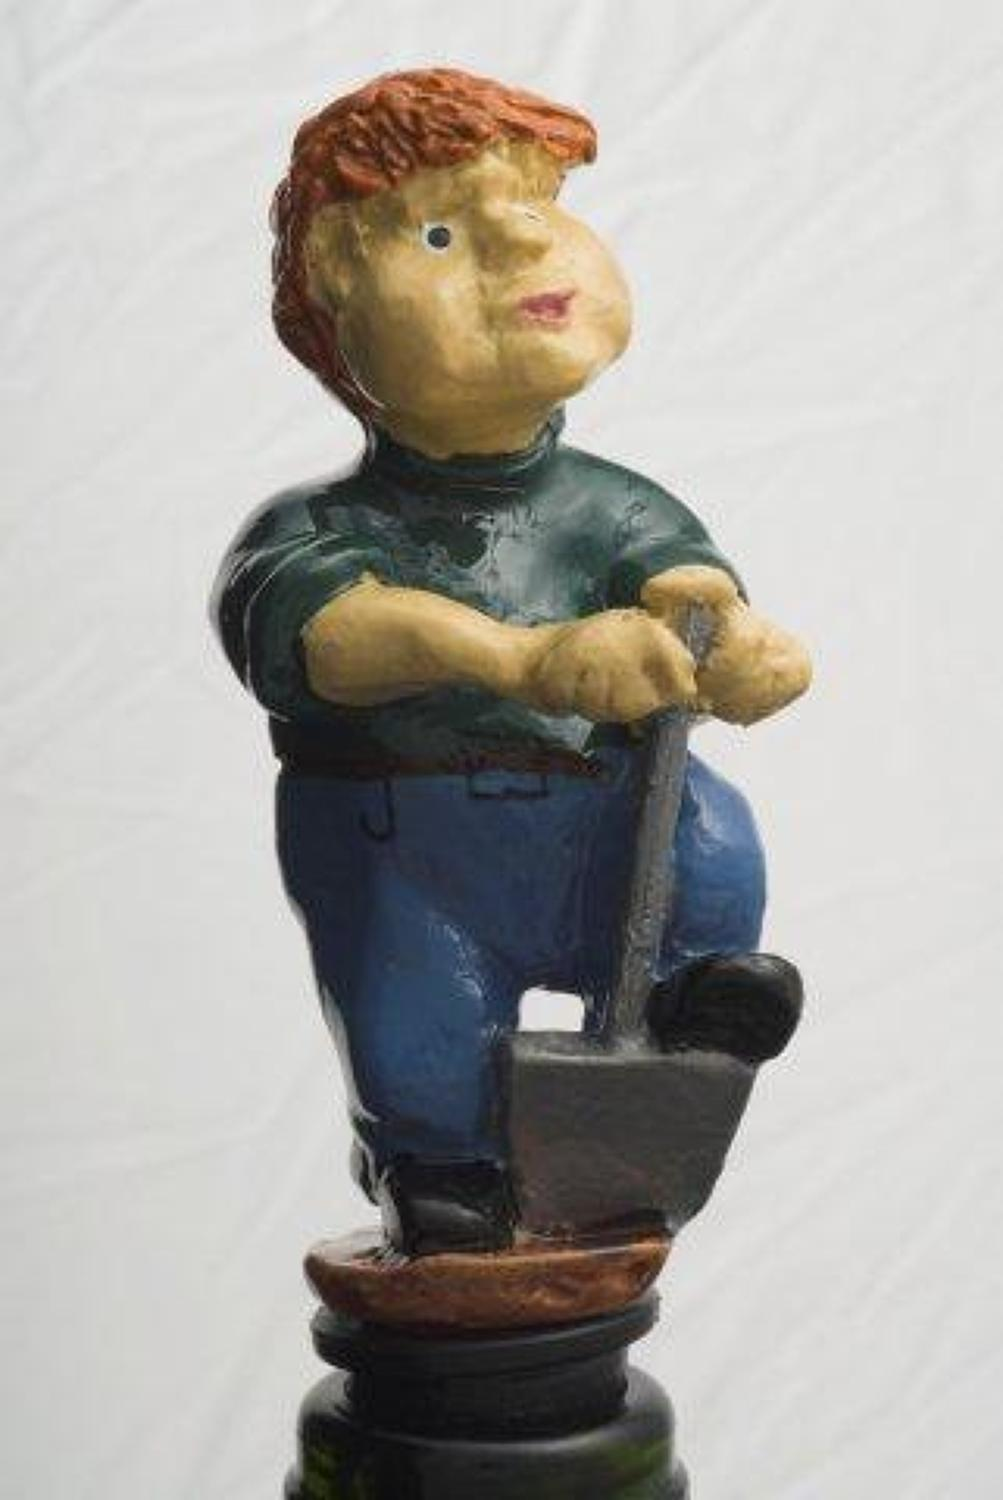 Digger - gardener bottle stopper